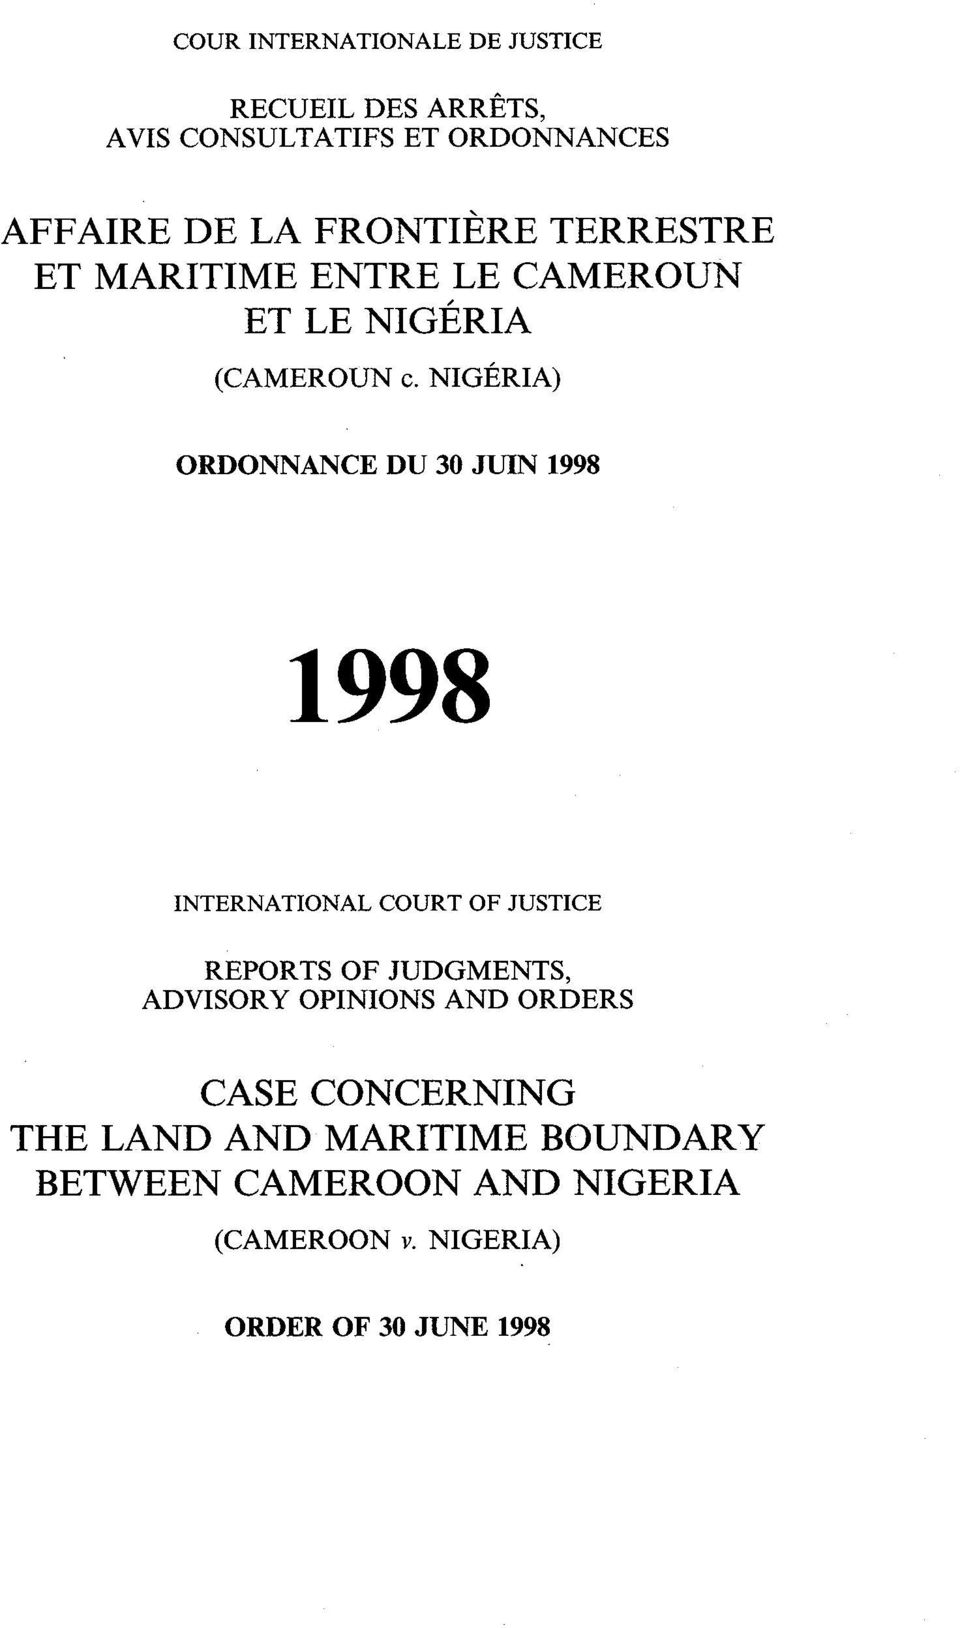 NIGÉRIA) ORDONNANCE DU 30 JUIN 1998 INTERNATIONAL COURT OF JUSTICE REPORTS OF JUDGMENTS, ADVISORY